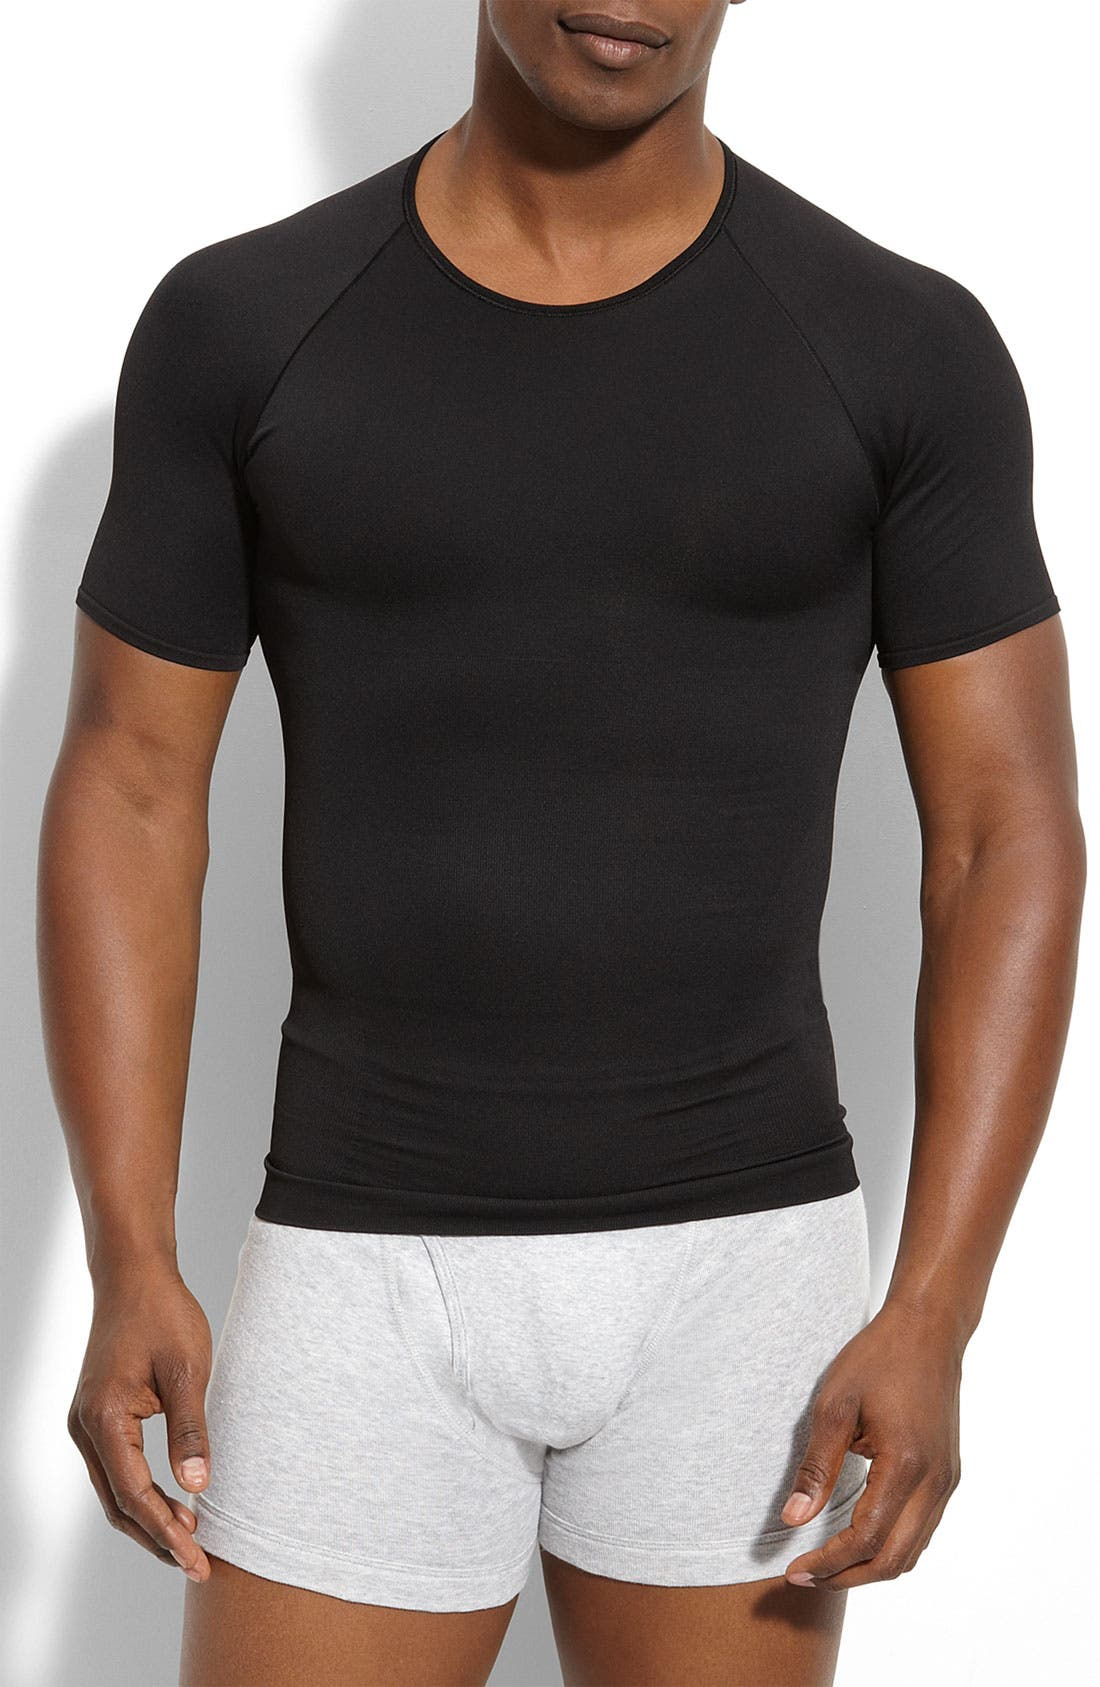 SIZE LARGE//WHITE or XL//BLACK *DEL SPANX ZONED PERFORMANCE CREWNECK-619 RT $78